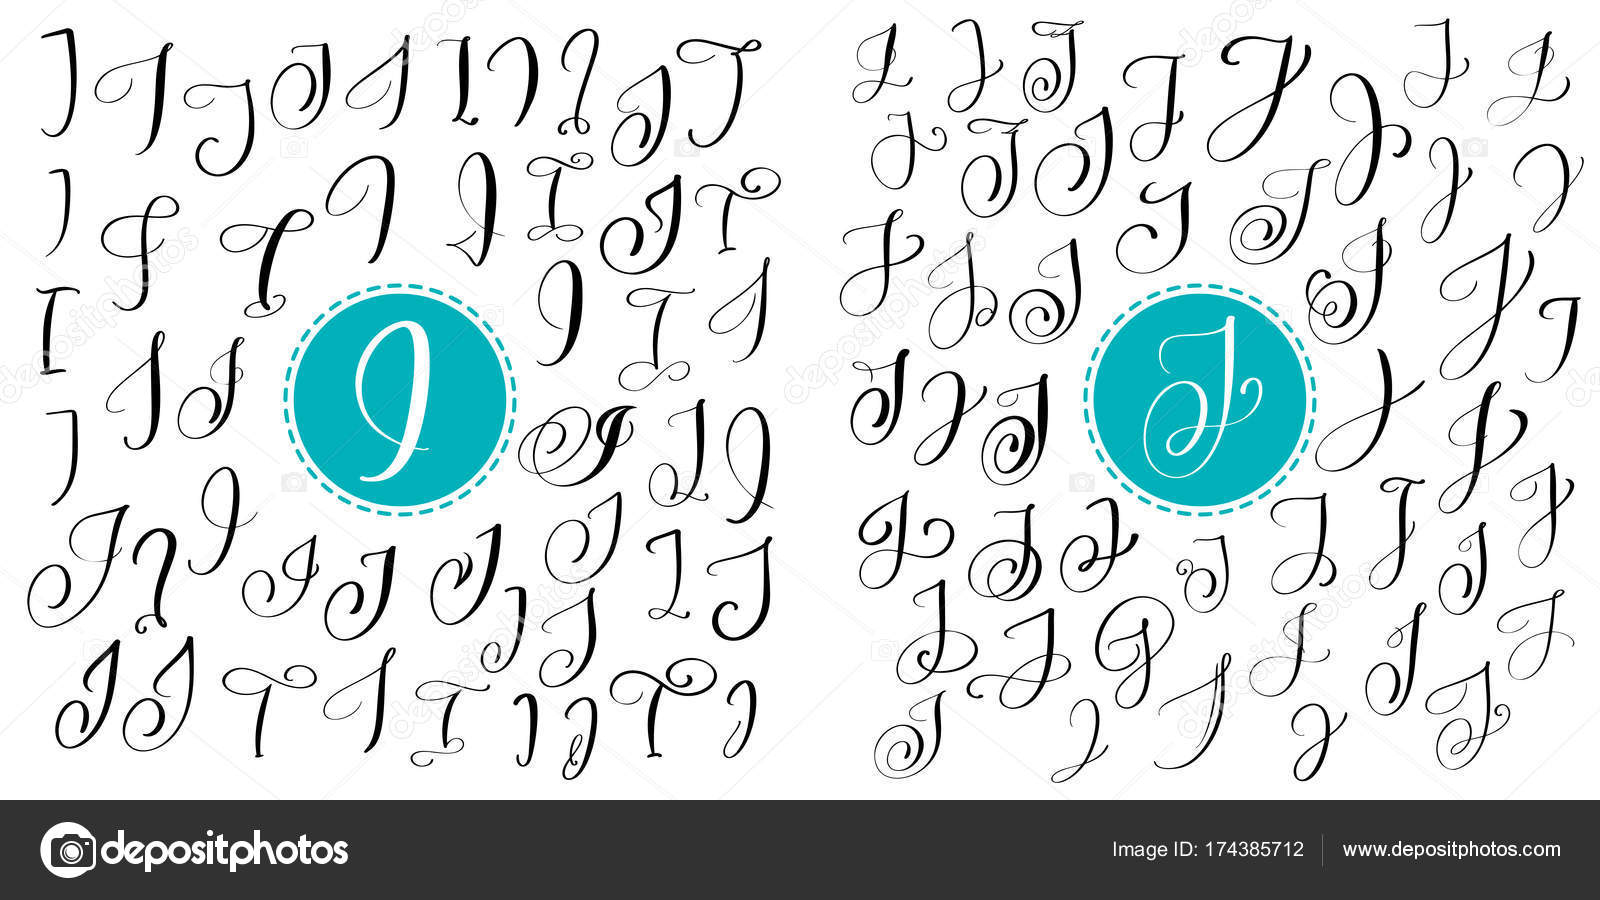 Set Letters I J Hand Drawn Vector Flourish Calligraphy Script Font Isolated